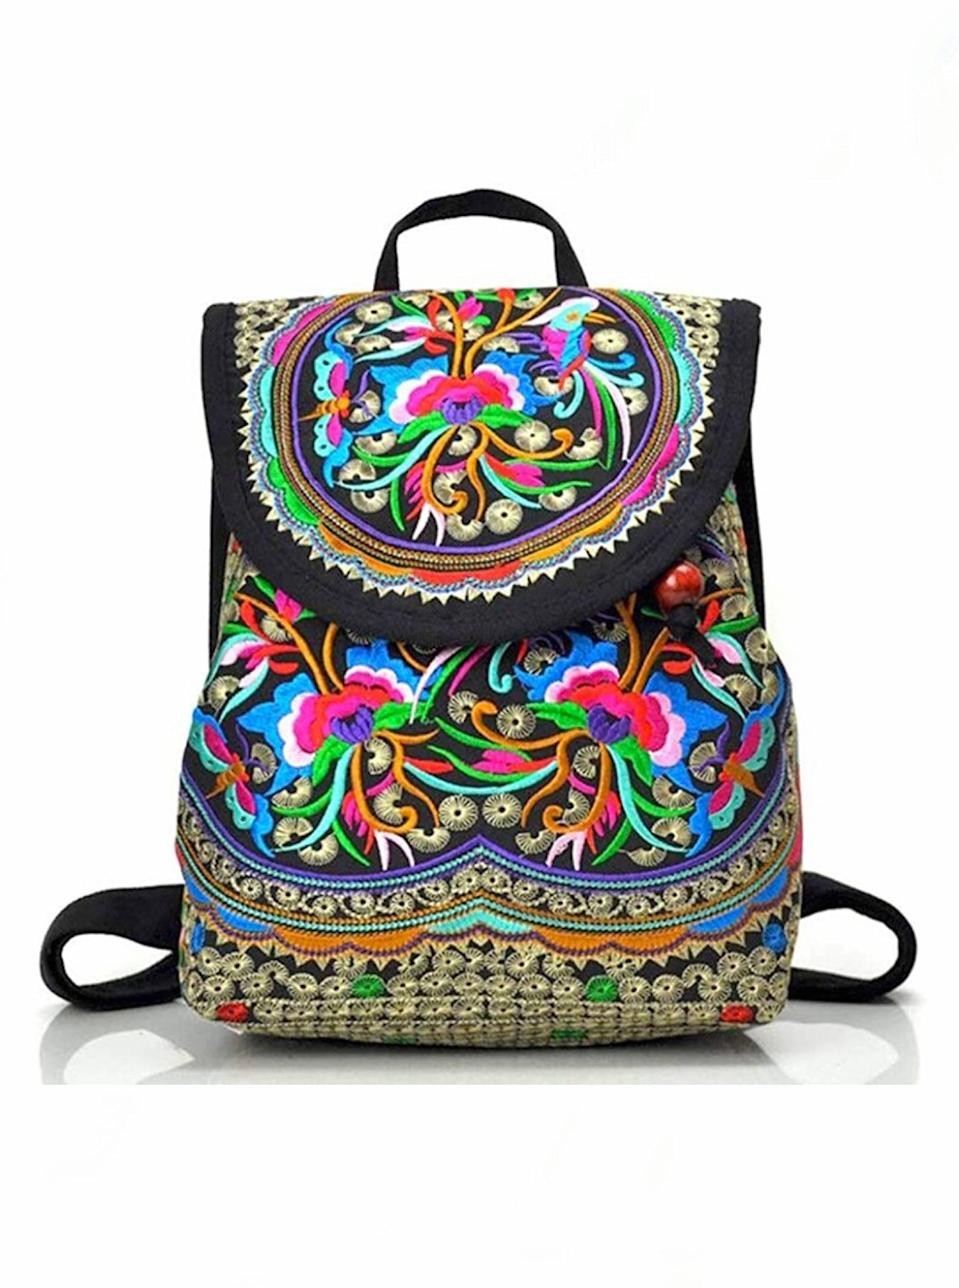 "If she's got adventures planned for the summer, brighten up her travel looks with this embroidered backpack, available in 11 pretty designs. $20, Amazon. <a href=""https://www.amazon.com/dp/B06XRPXC1X/"" rel=""nofollow noopener"" target=""_blank"" data-ylk=""slk:Get it now!"" class=""link rapid-noclick-resp"">Get it now!</a>"